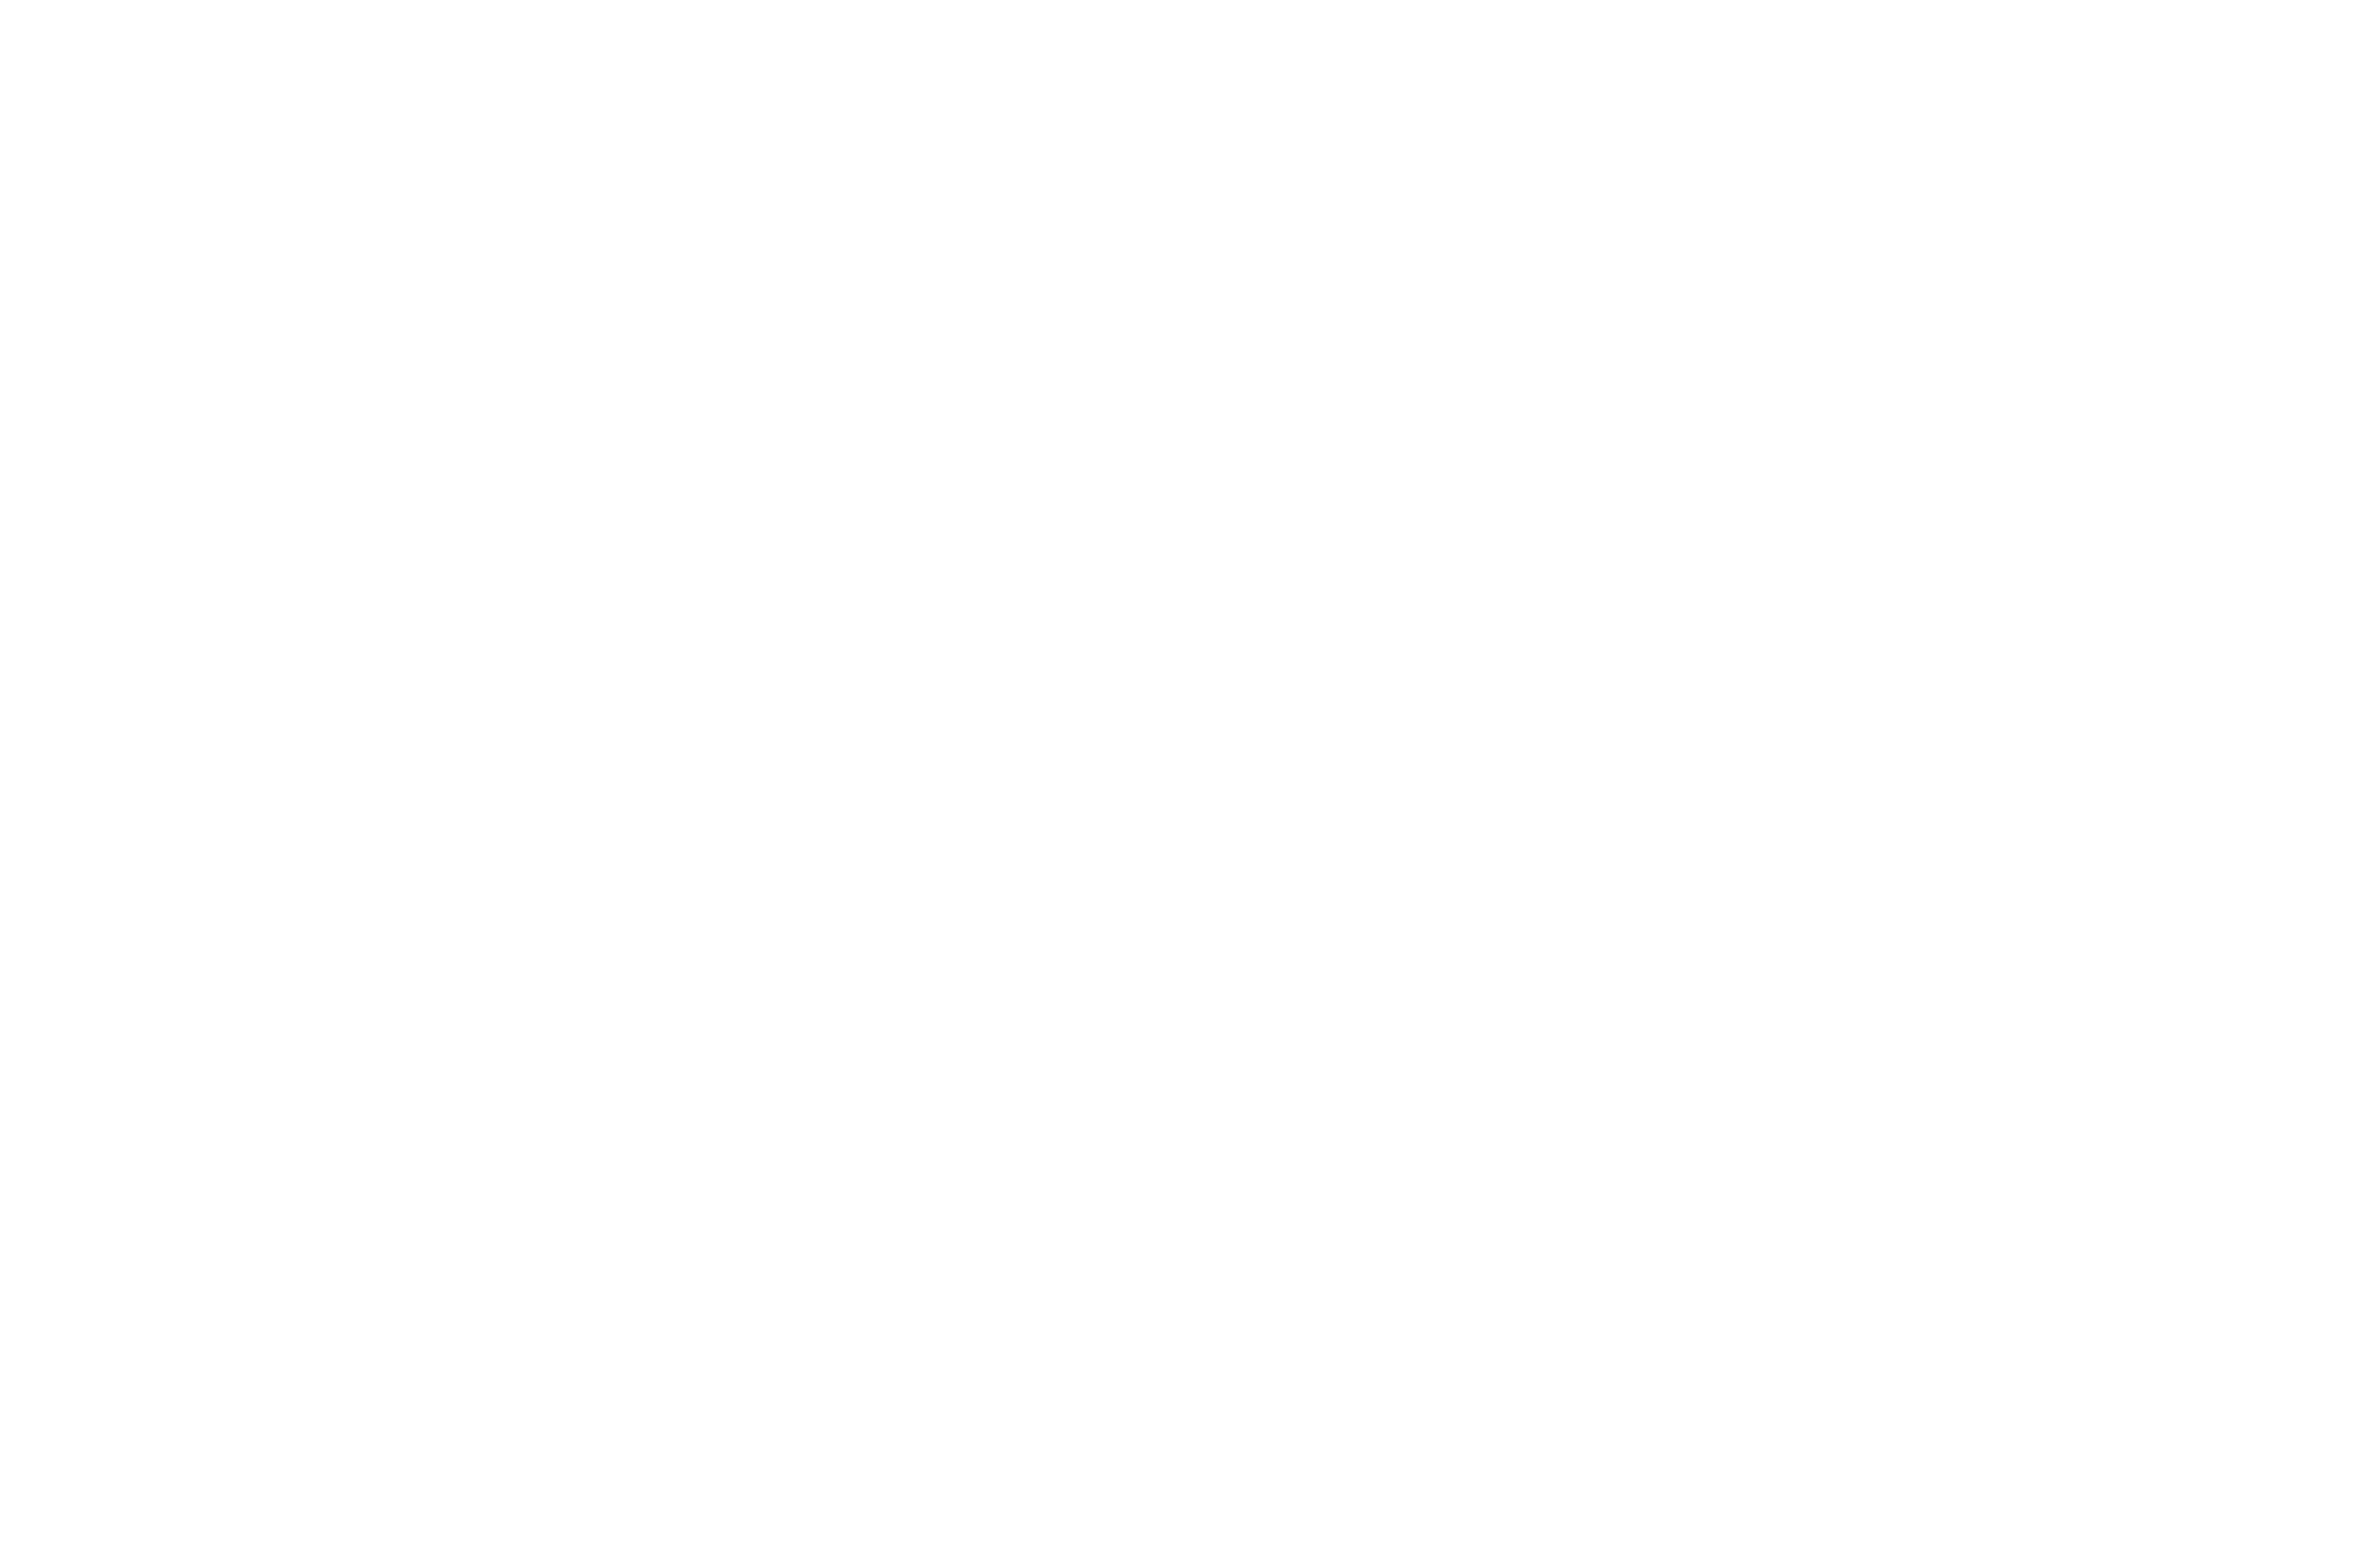 Boutique Outlet | Zlatushka.fashion